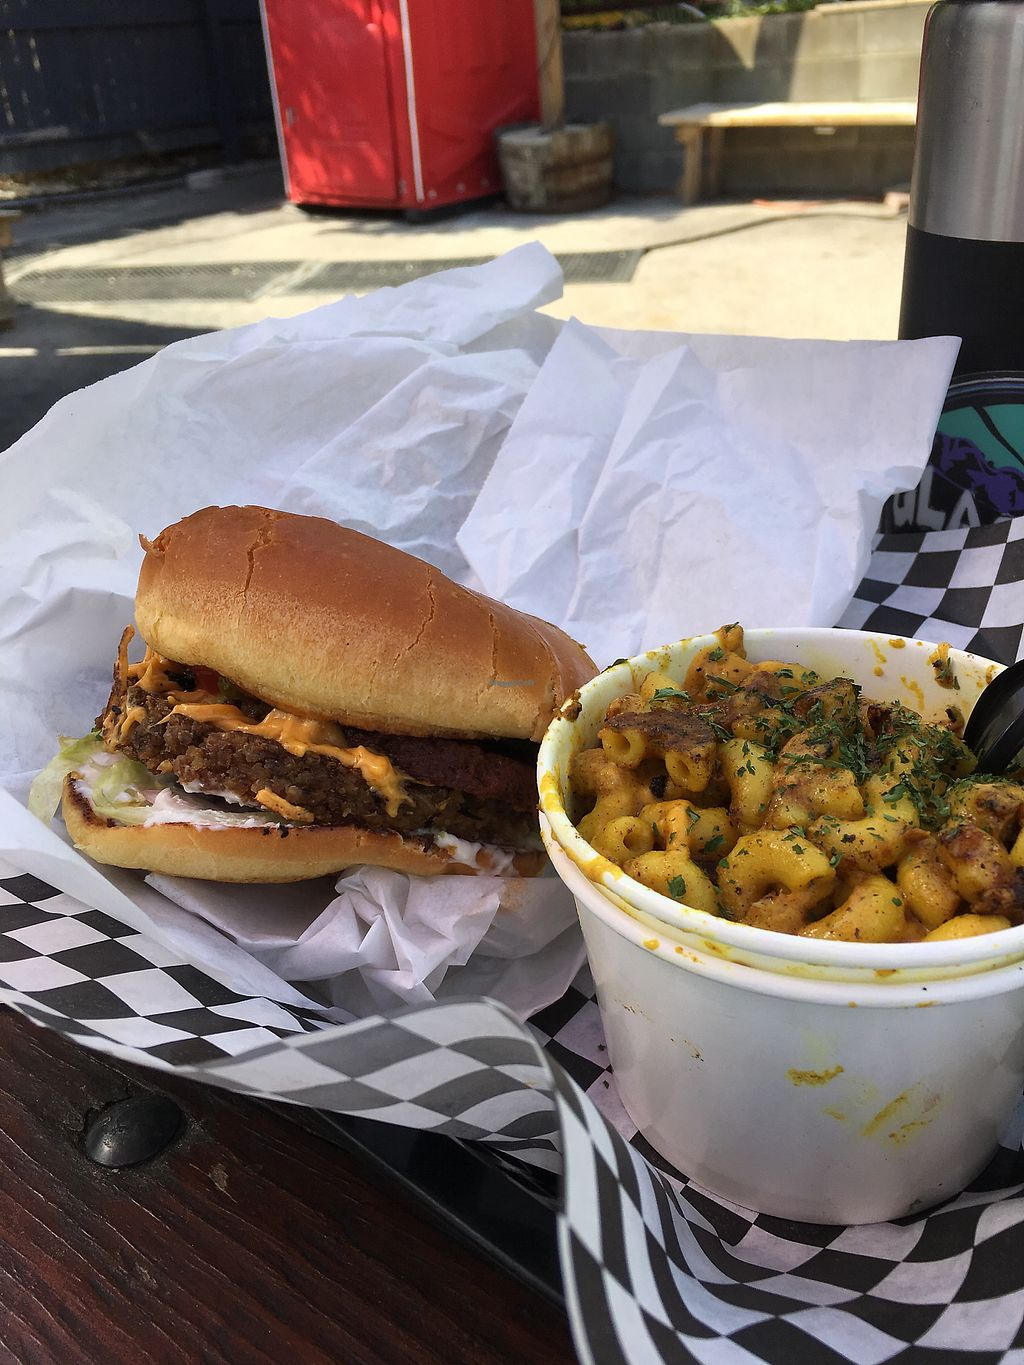 """Photo of Arlo's Food Truck - Cheerup Charlie's  by <a href=""""/members/profile/caitlincharl10"""">caitlincharl10</a> <br/>bacon cheeseburger and a mac n cheese side <br/> October 28, 2017  - <a href='/contact/abuse/image/29535/319404'>Report</a>"""